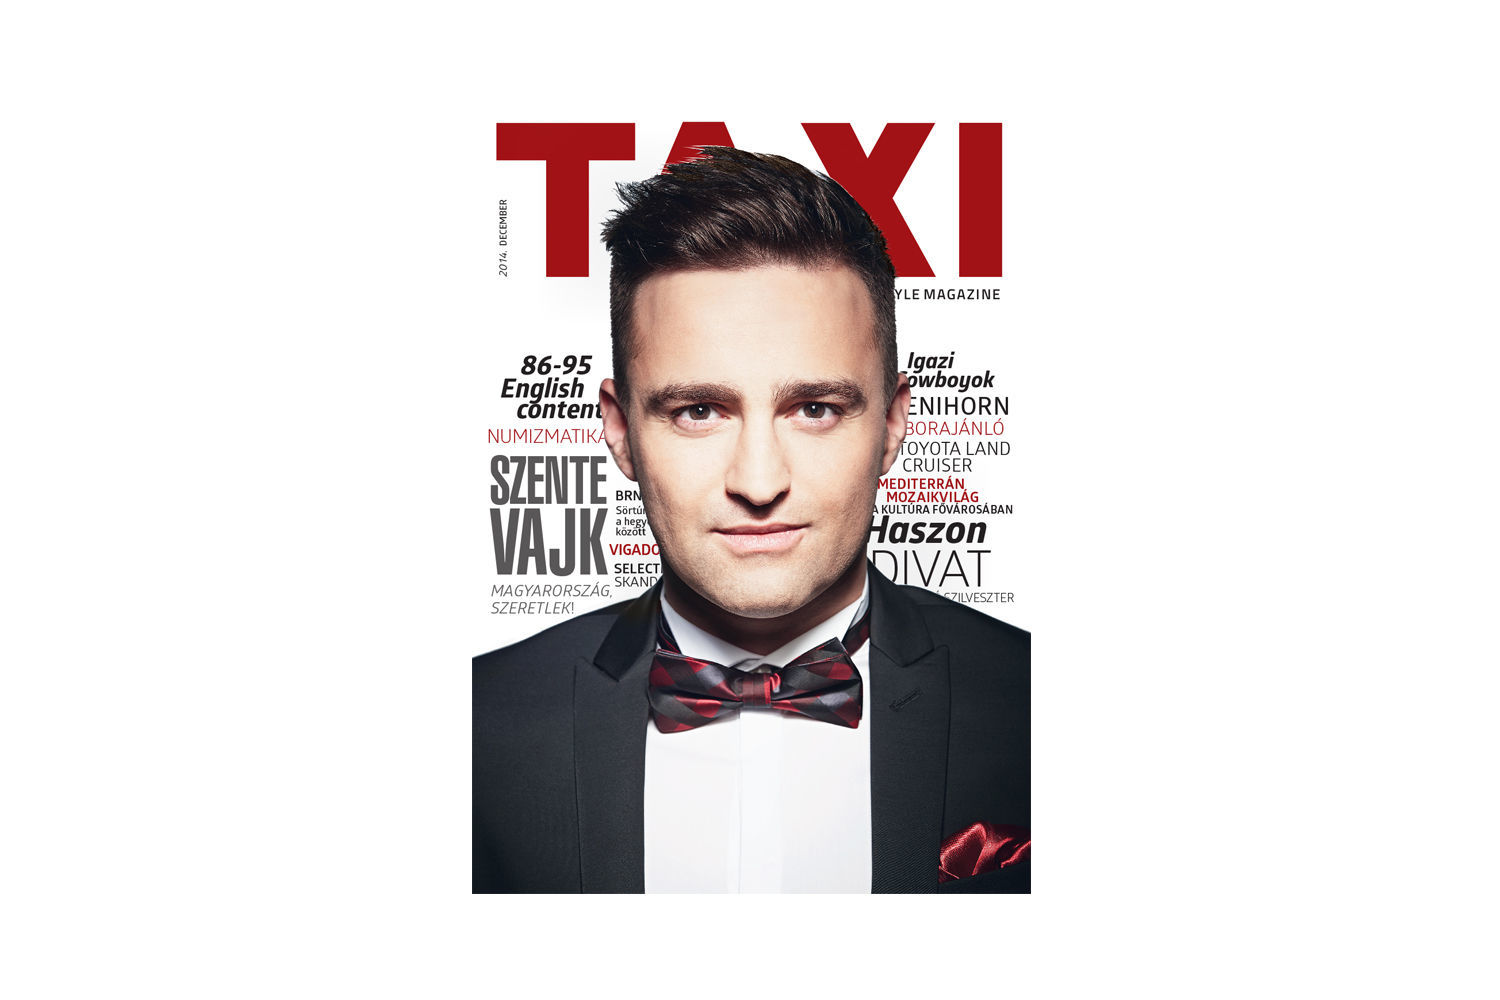 TAXI MAGAZIN 2 - 1 by petrilladesign